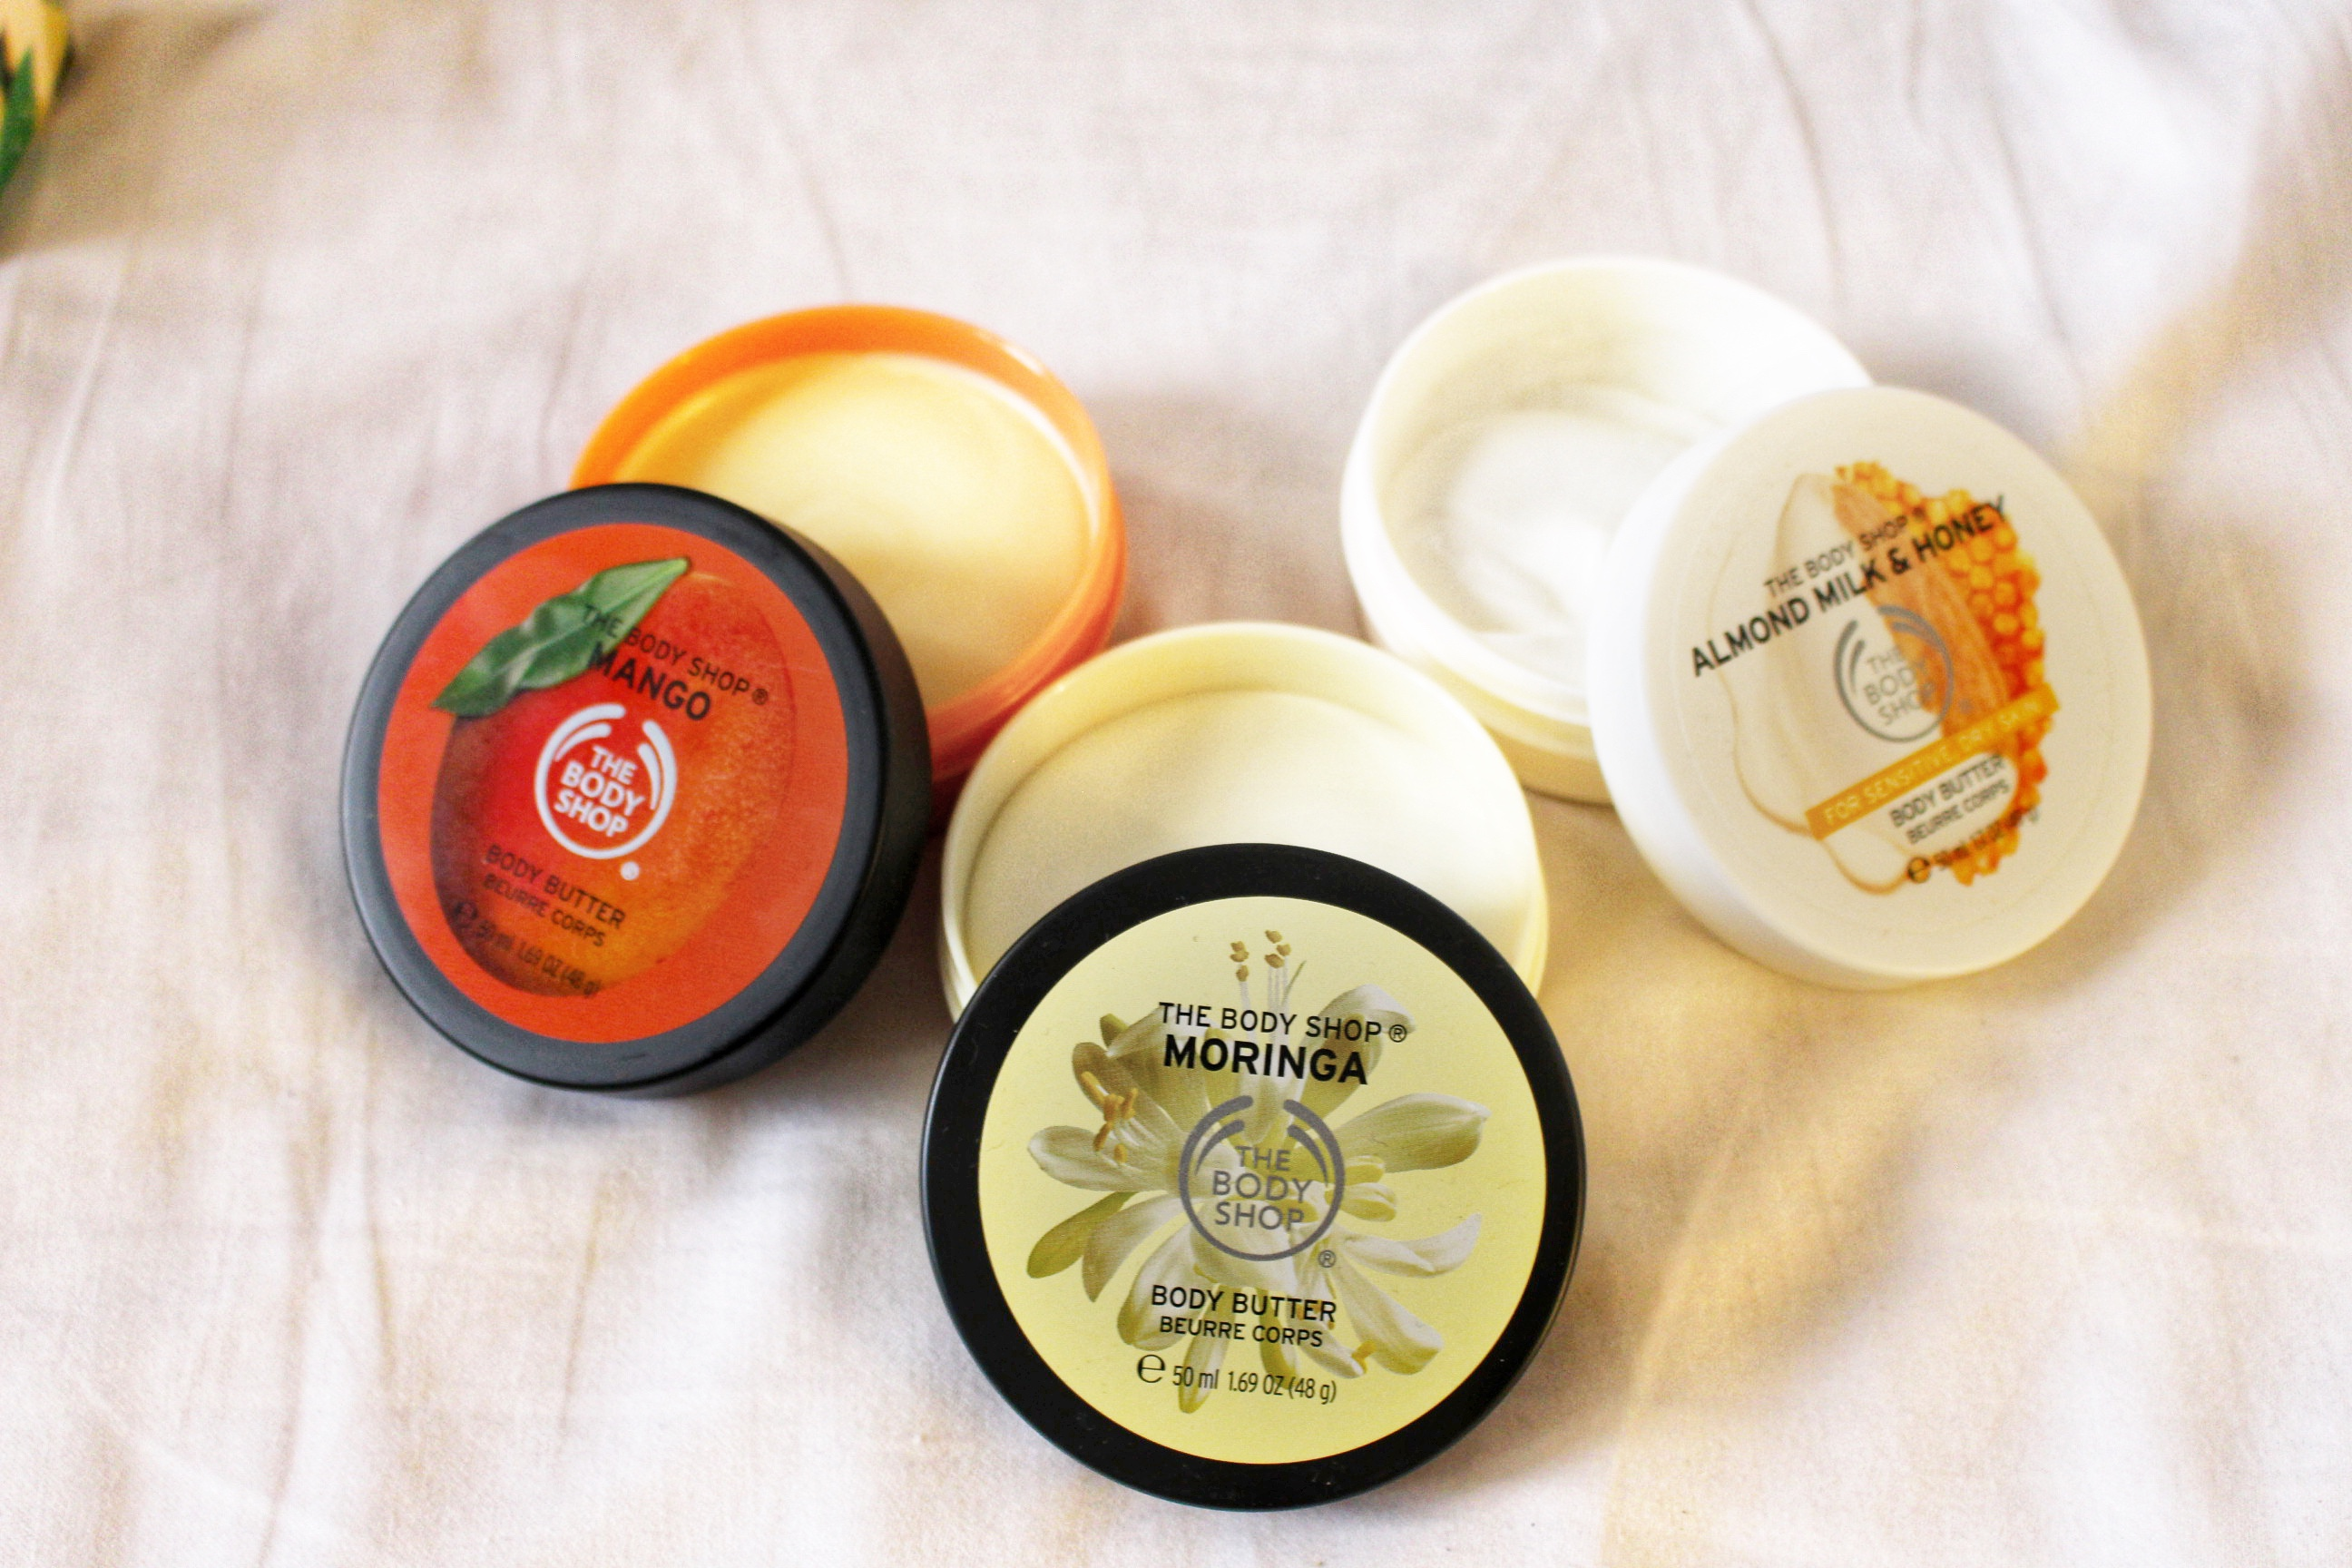 trio-mango- almond-honey-moringa-body-butter-the-bodyshop-red-fragrant-christmas-gift-guide-raychel-says